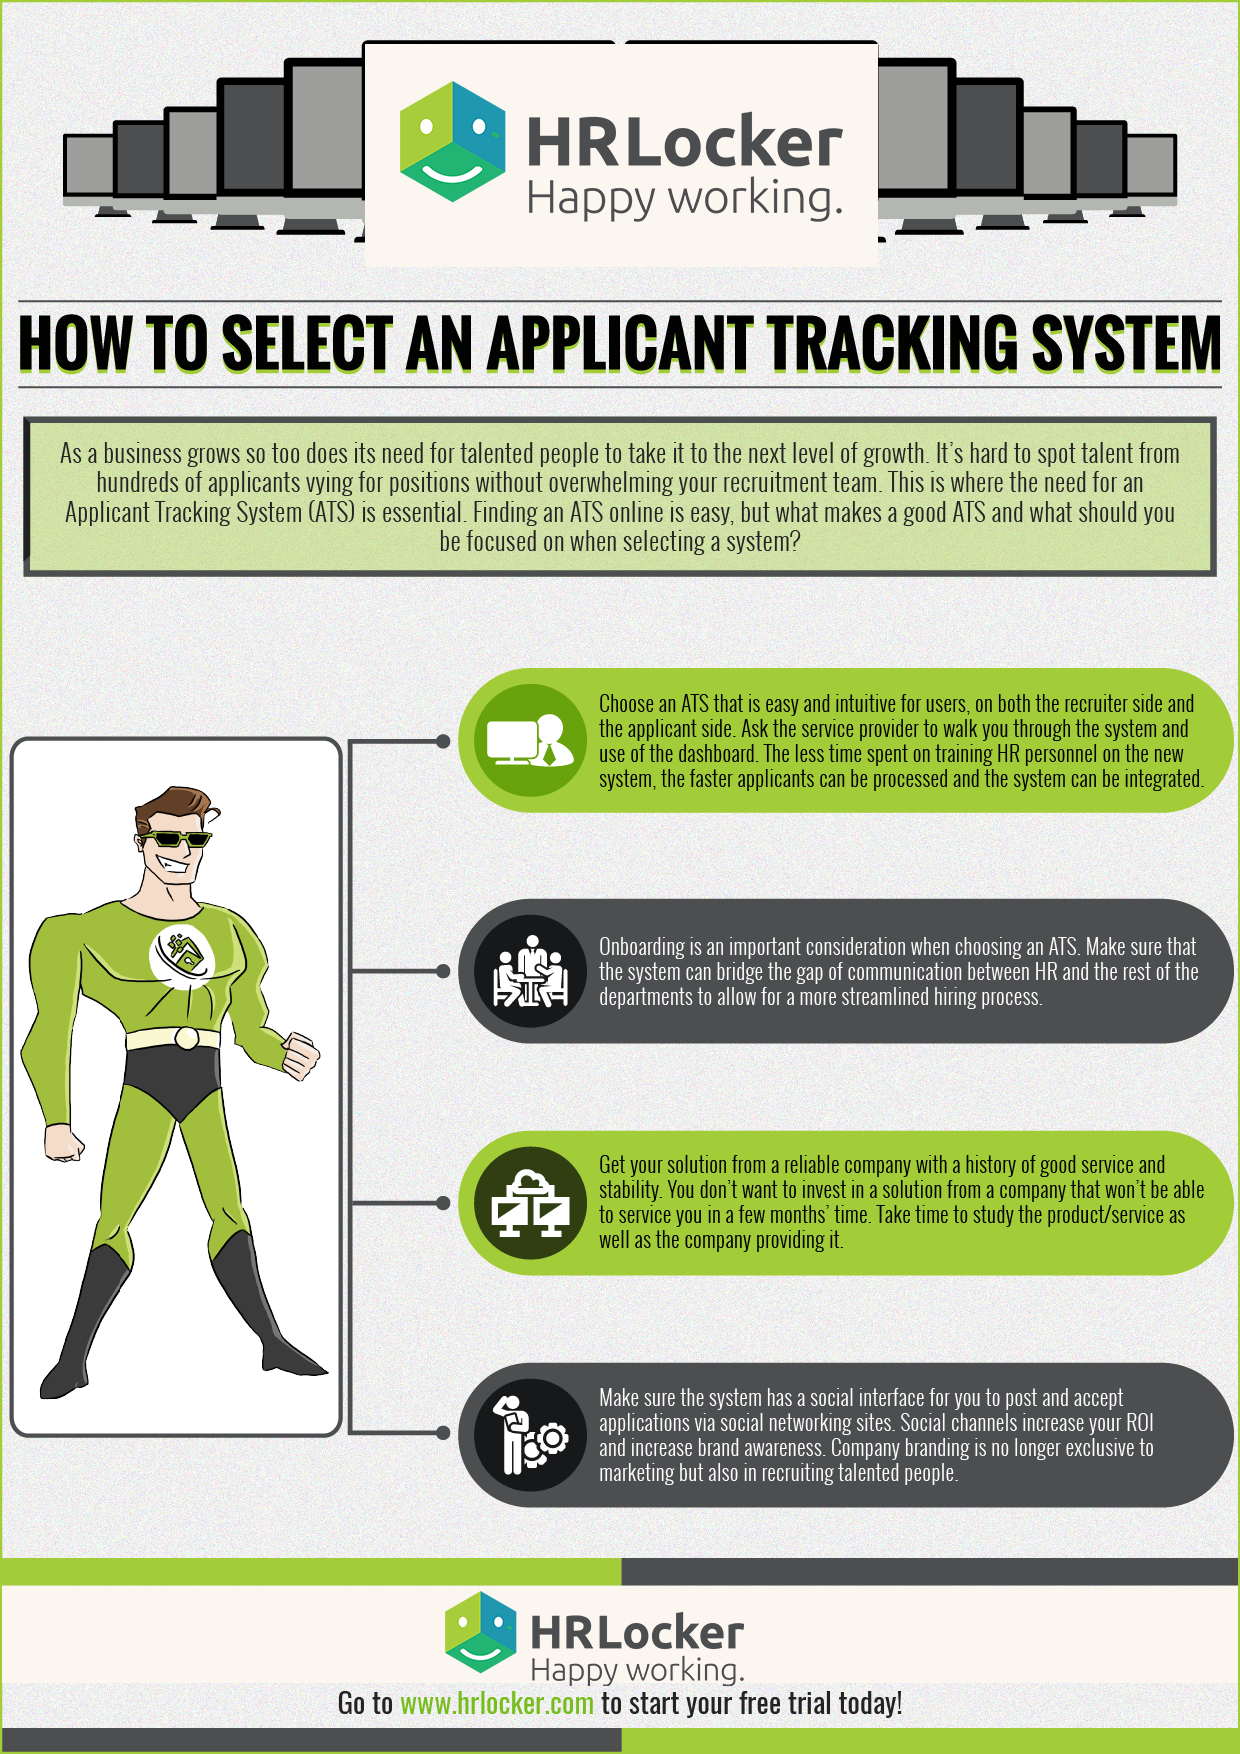 Be An Applicant Tracking System ATS Superhero